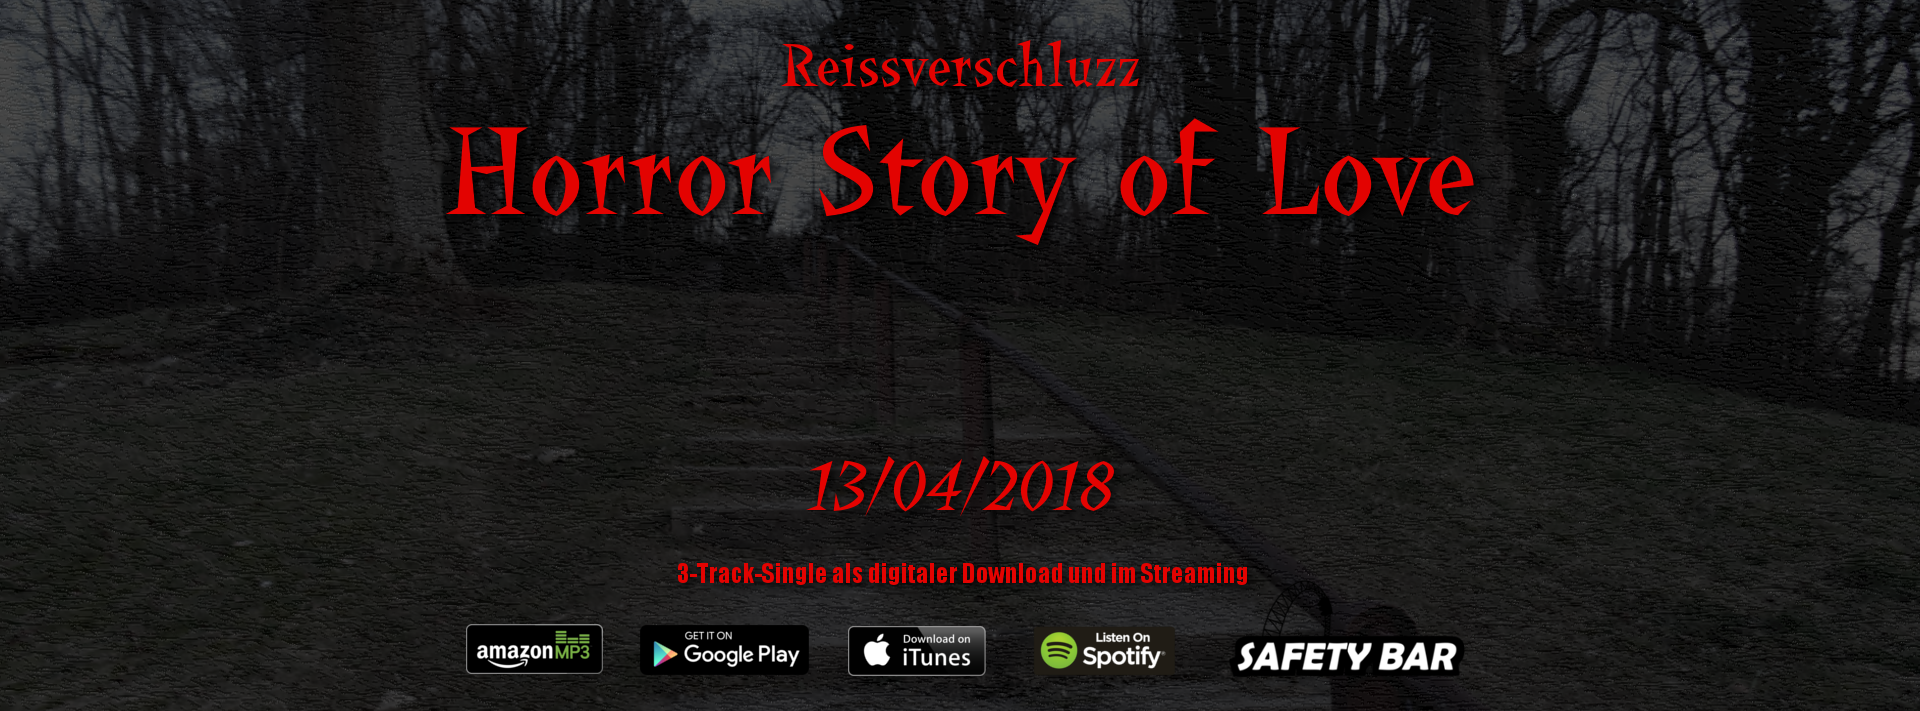 Horror Story of Love - Ab 13. April 2018!